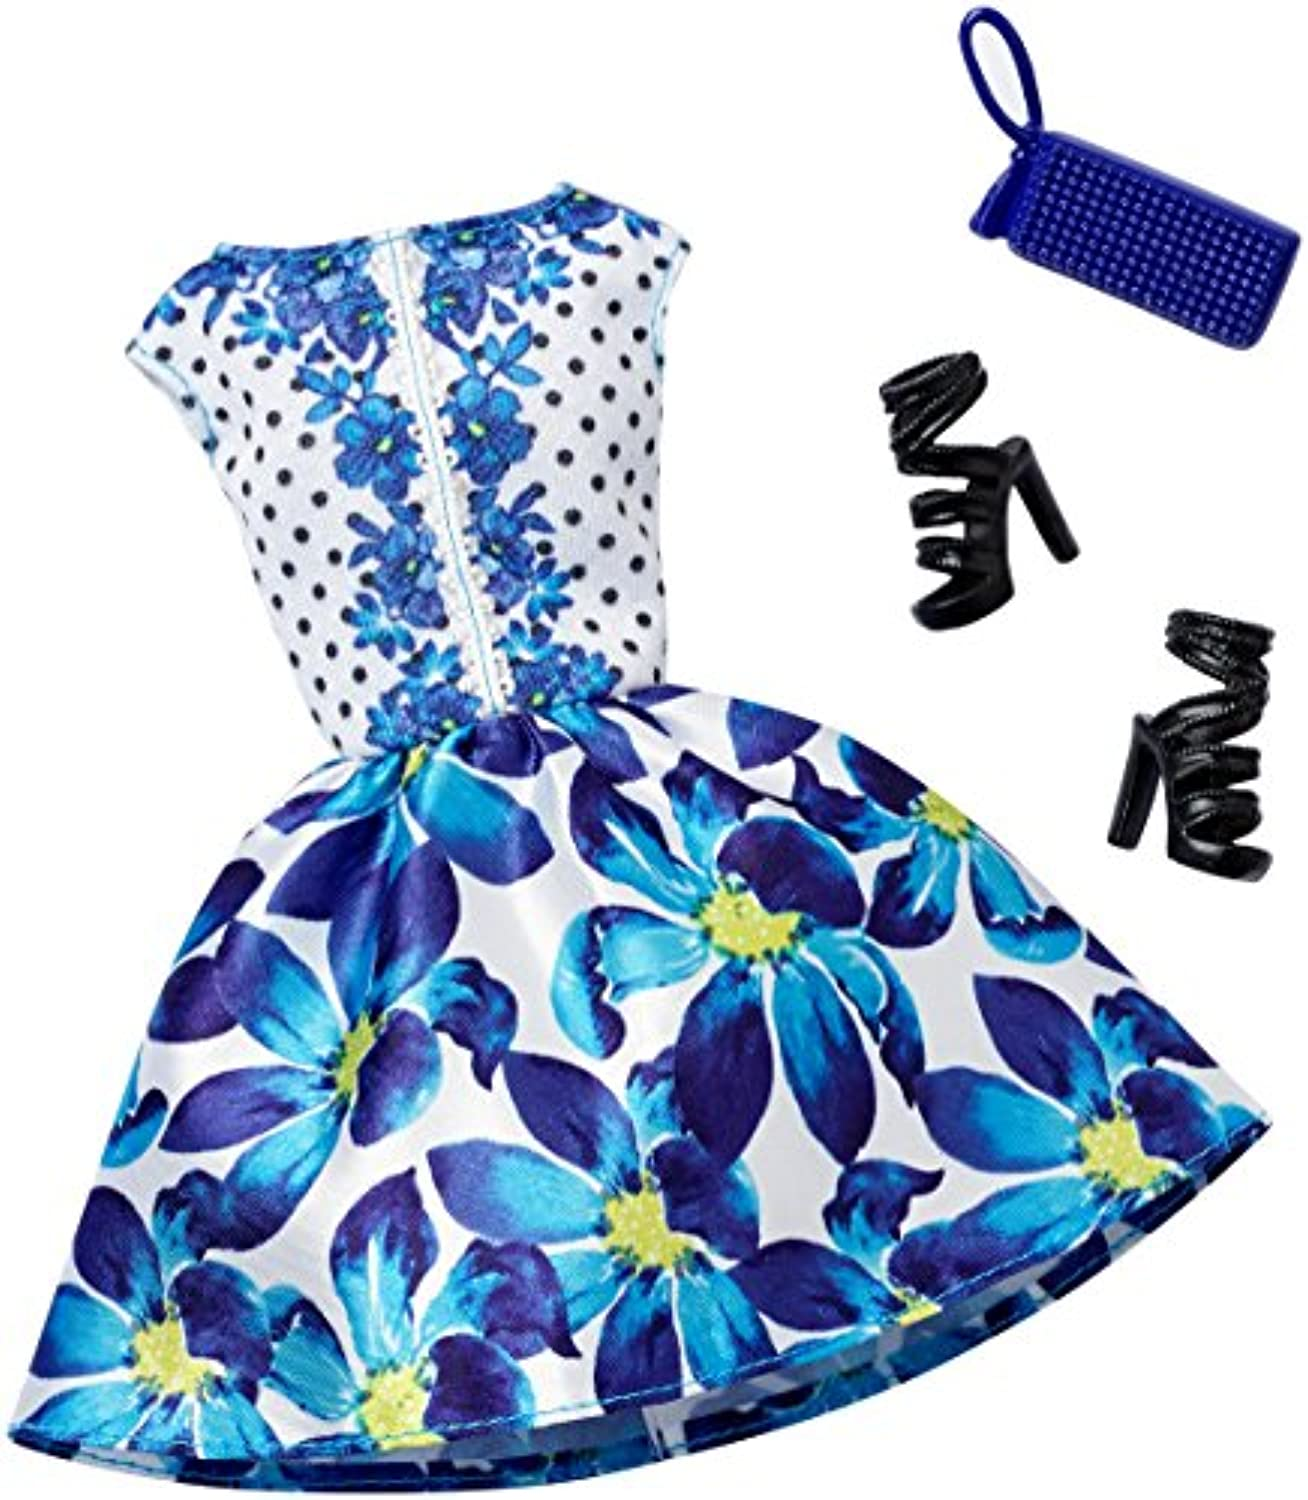 [バービー]Barbie Complete Look Fashion Pack, Blue Floral Dress DHC58 [並行輸入品]